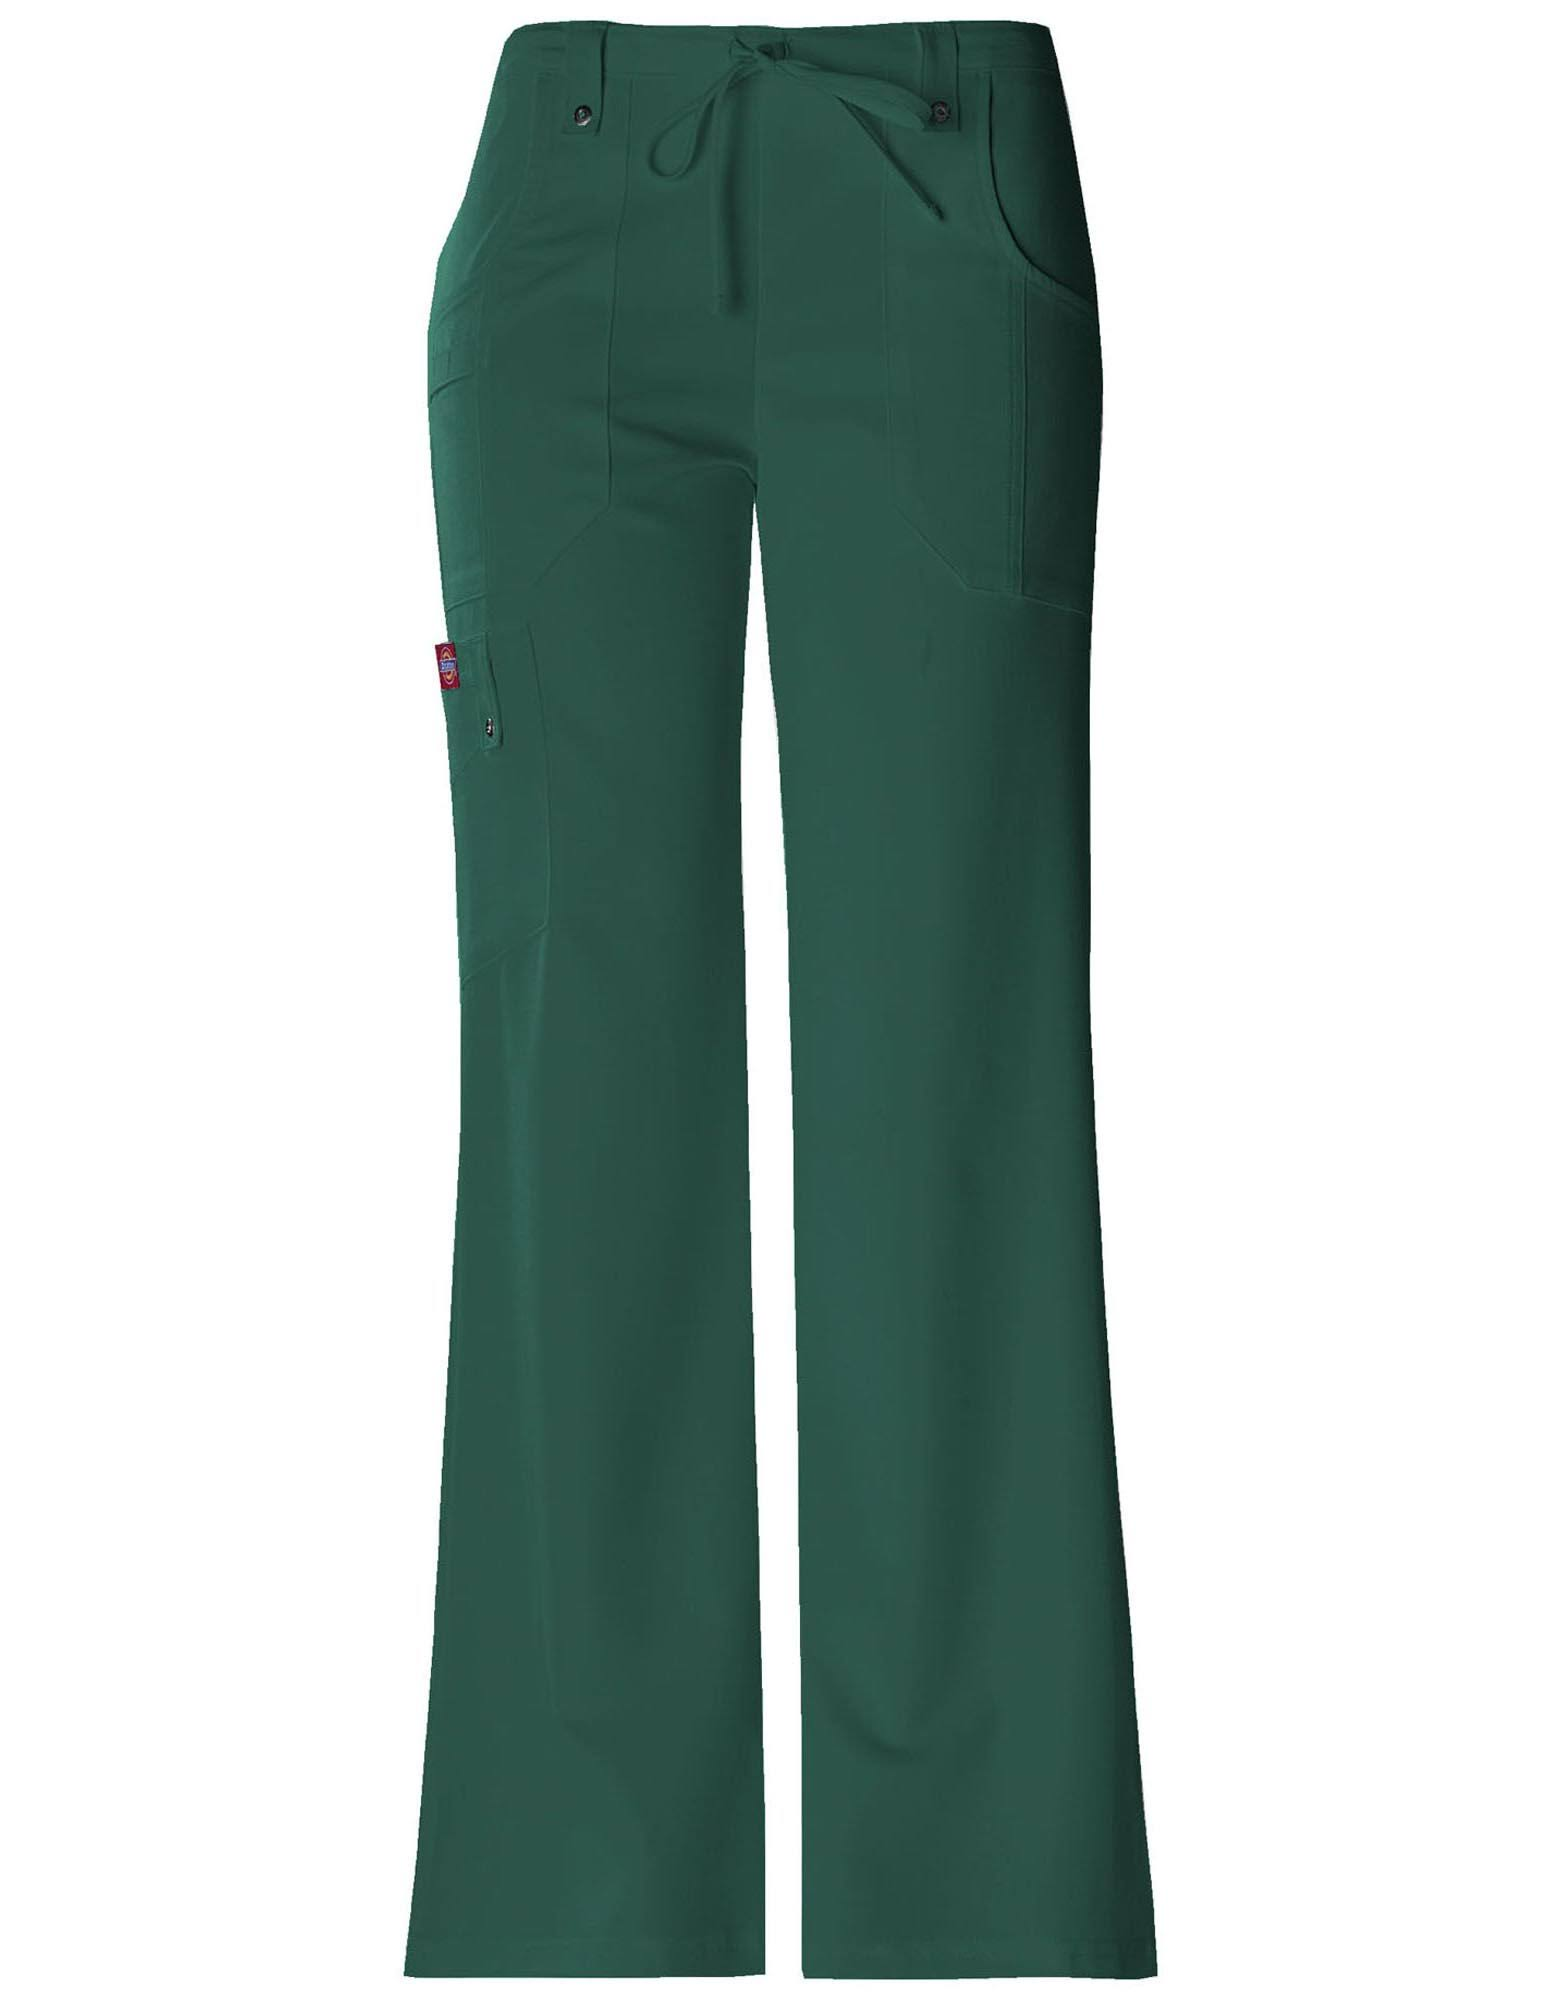 Dickies Women's Xtreme Stretch Fit Drawstring Flare Leg Pant - Hunter Green, Medium